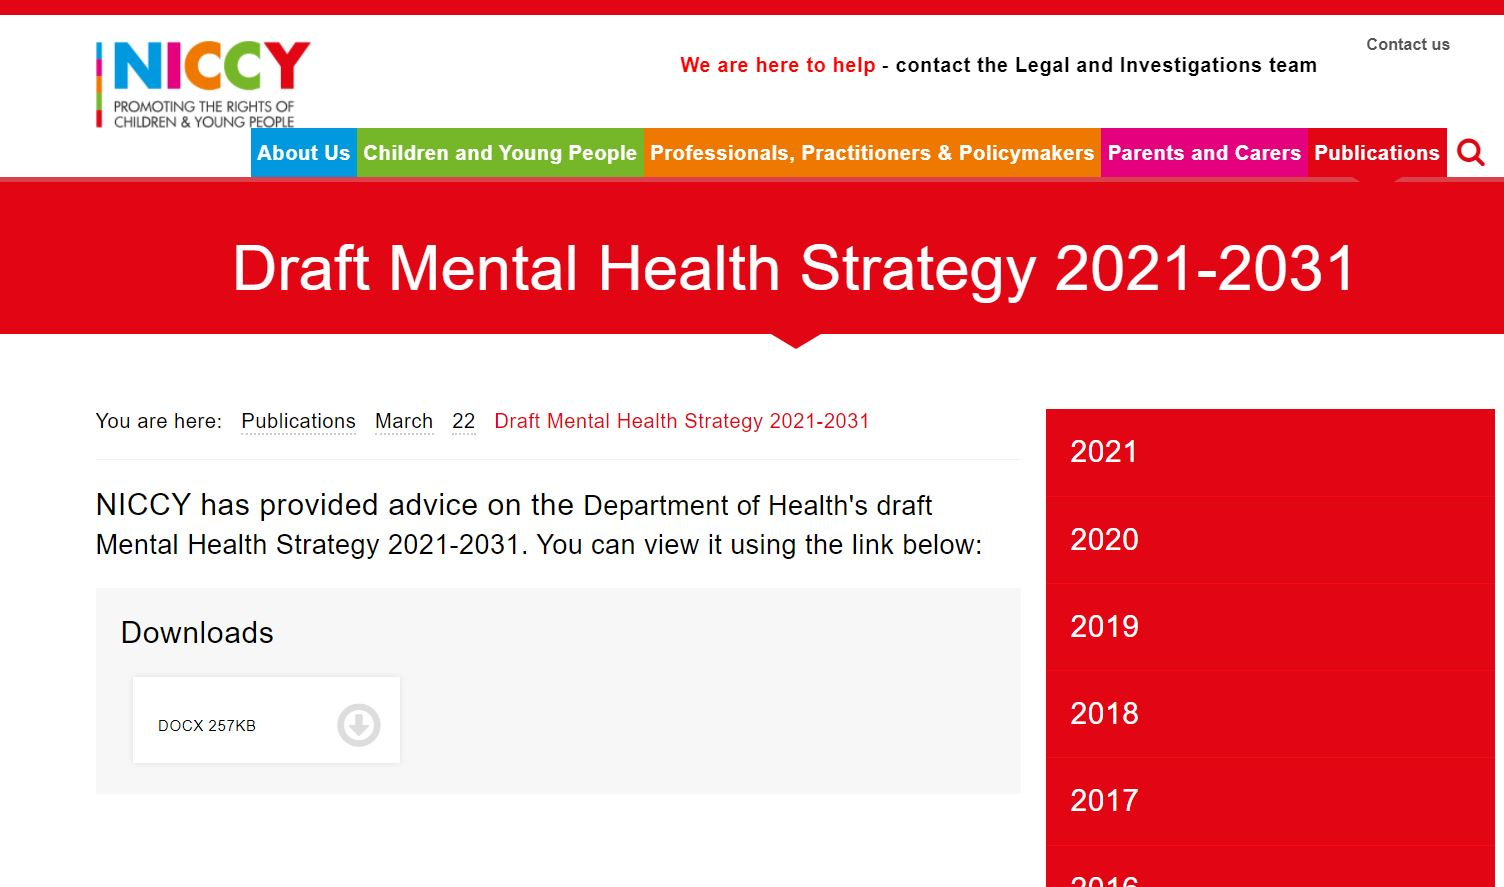 Image of Draft Mental Health Strategy 2021-2031